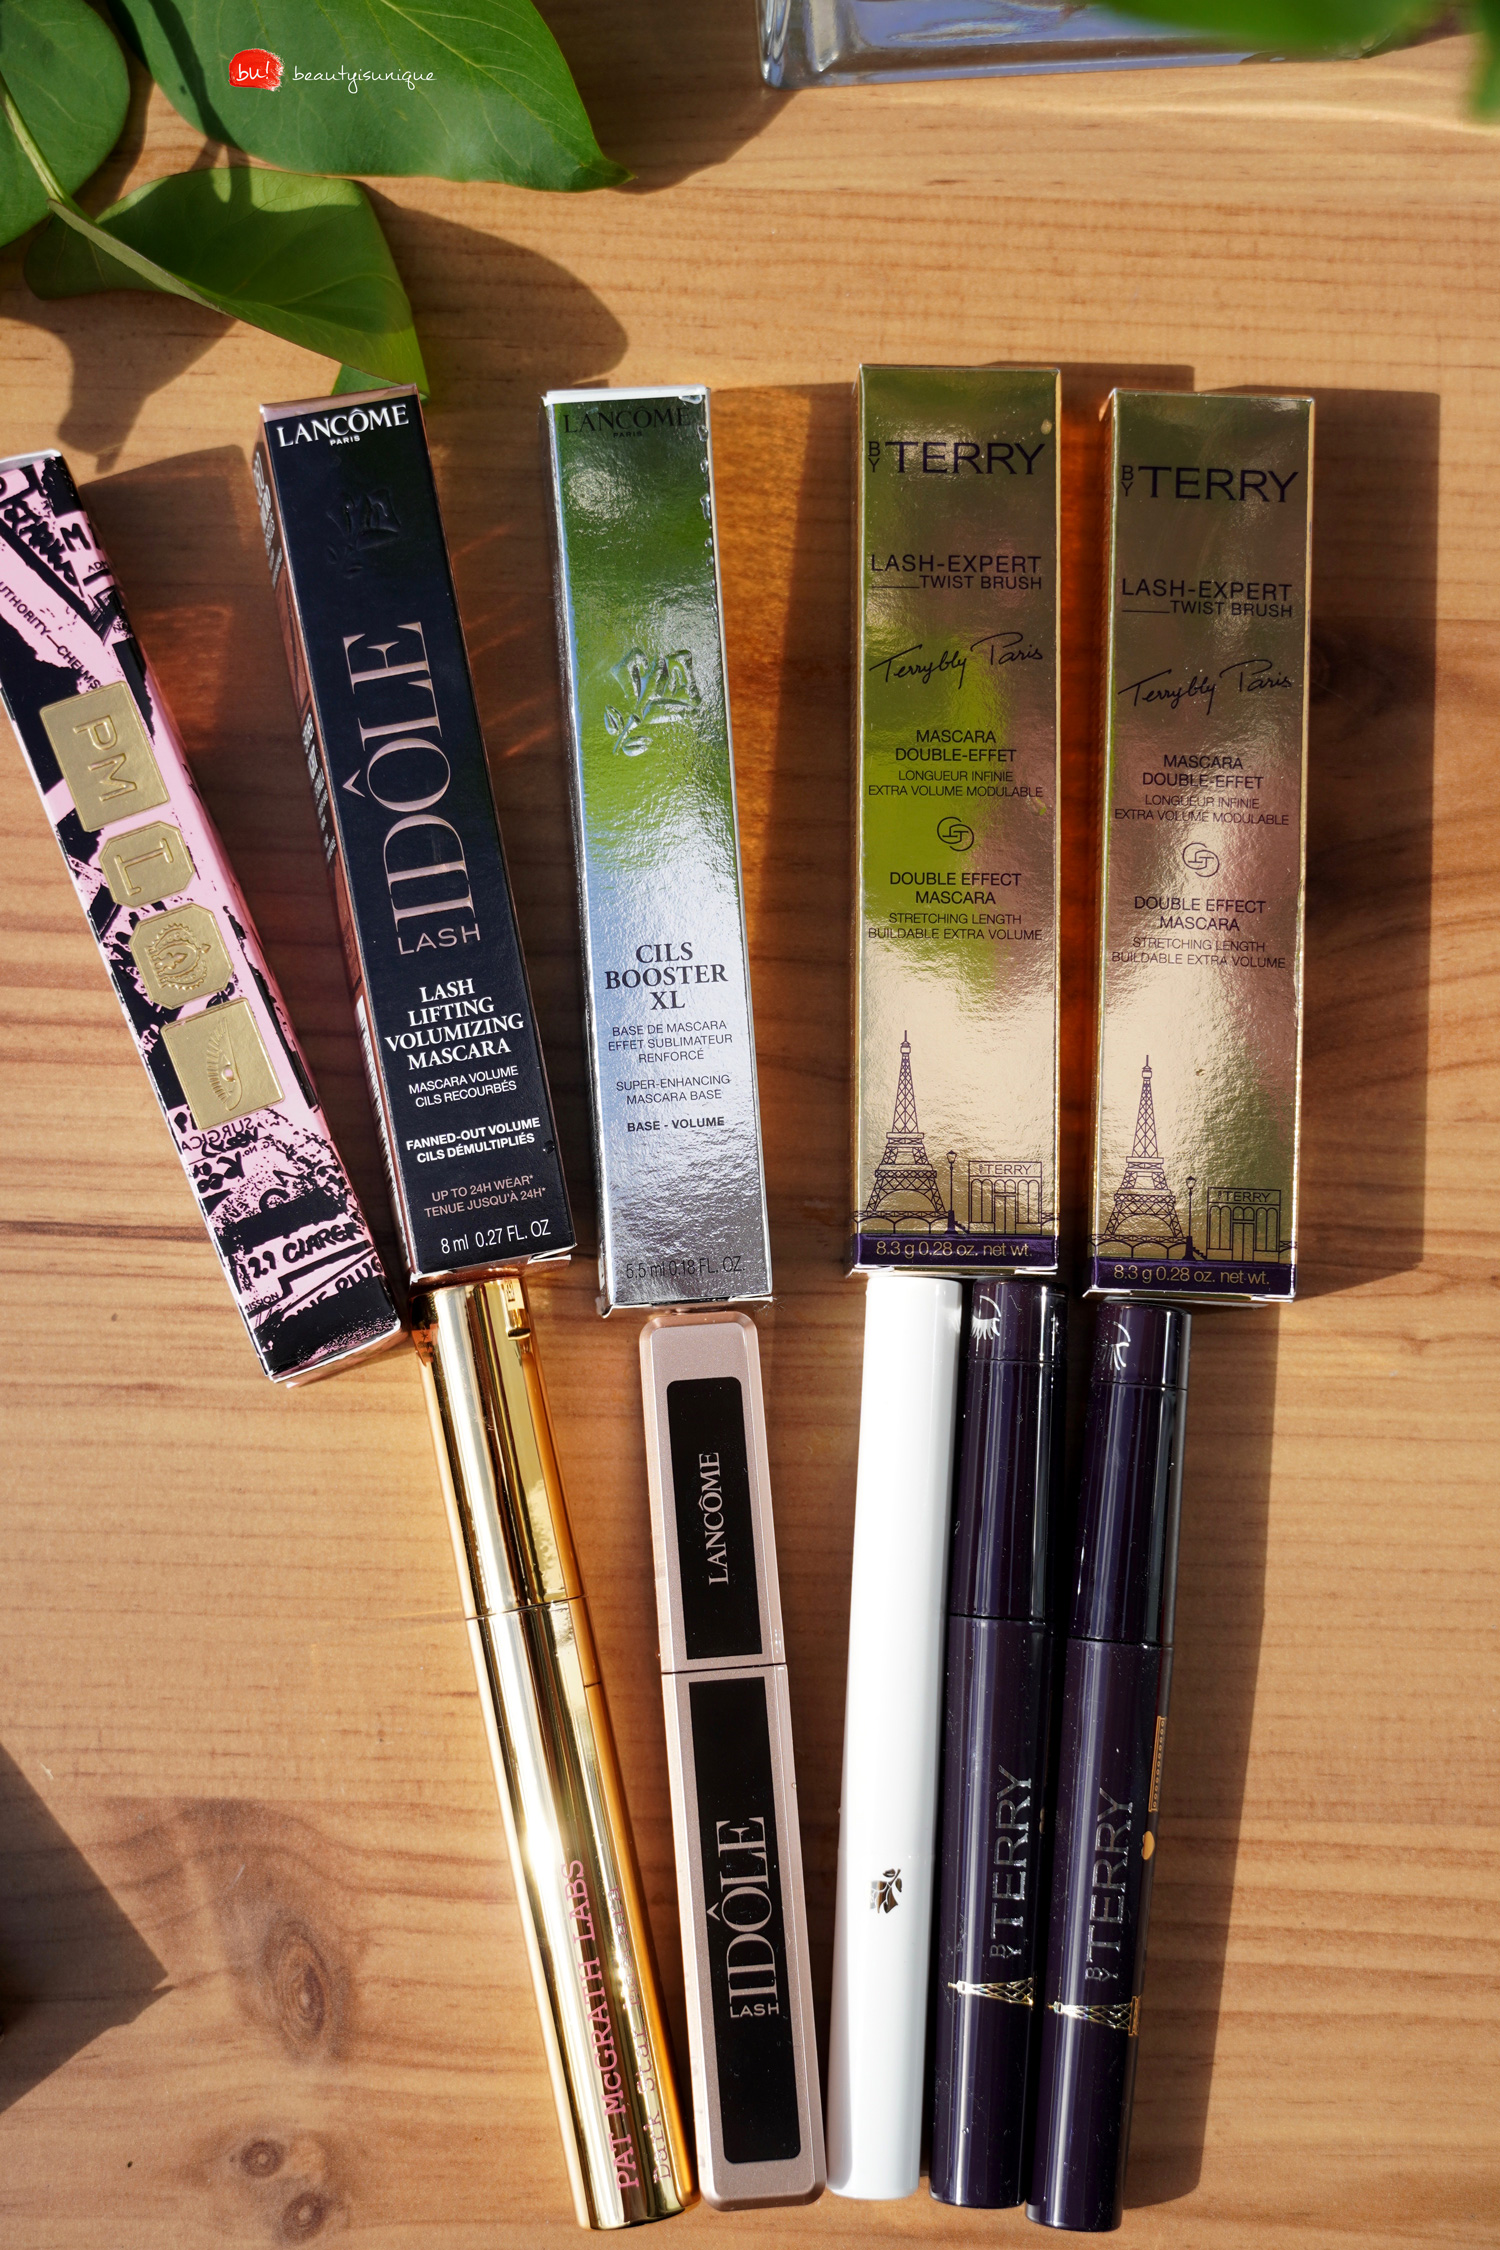 lancome-cils-booster-xl